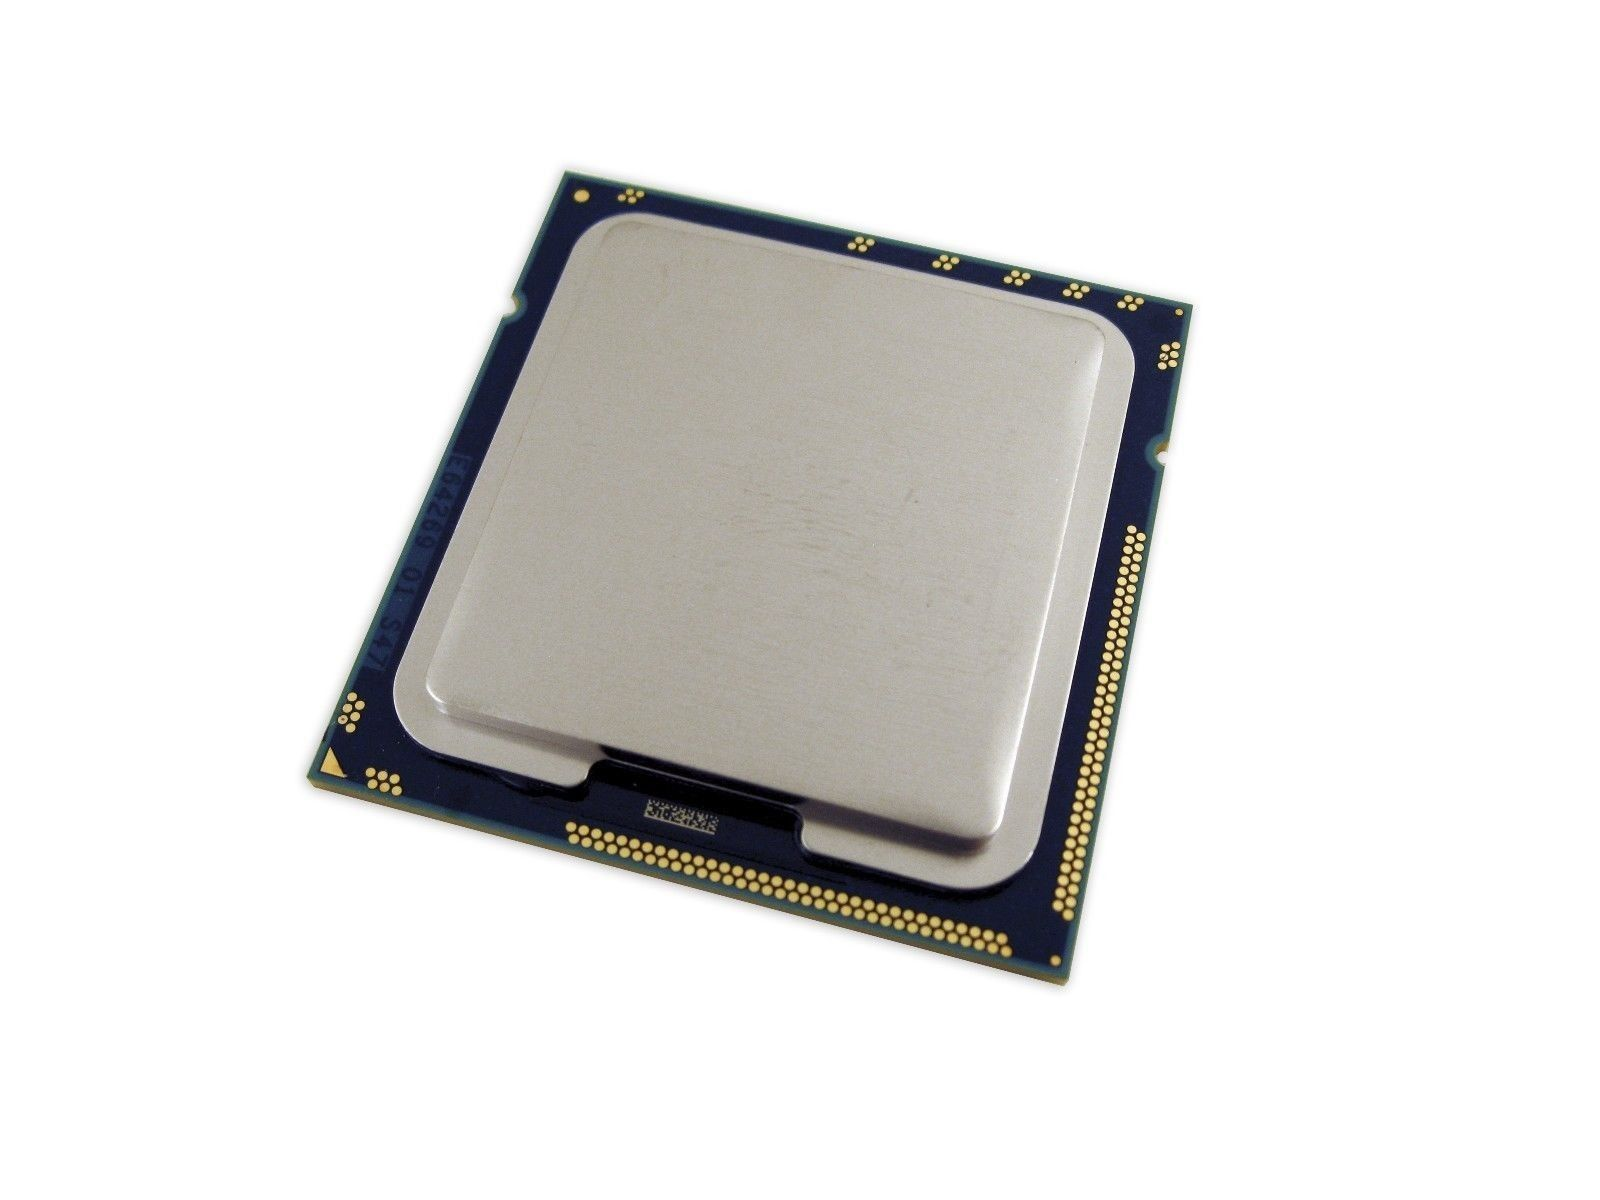 Intel SLBV9 Xeon X5677 LGA1366 Quad Core 3.46GHz 12MB CPU Processor